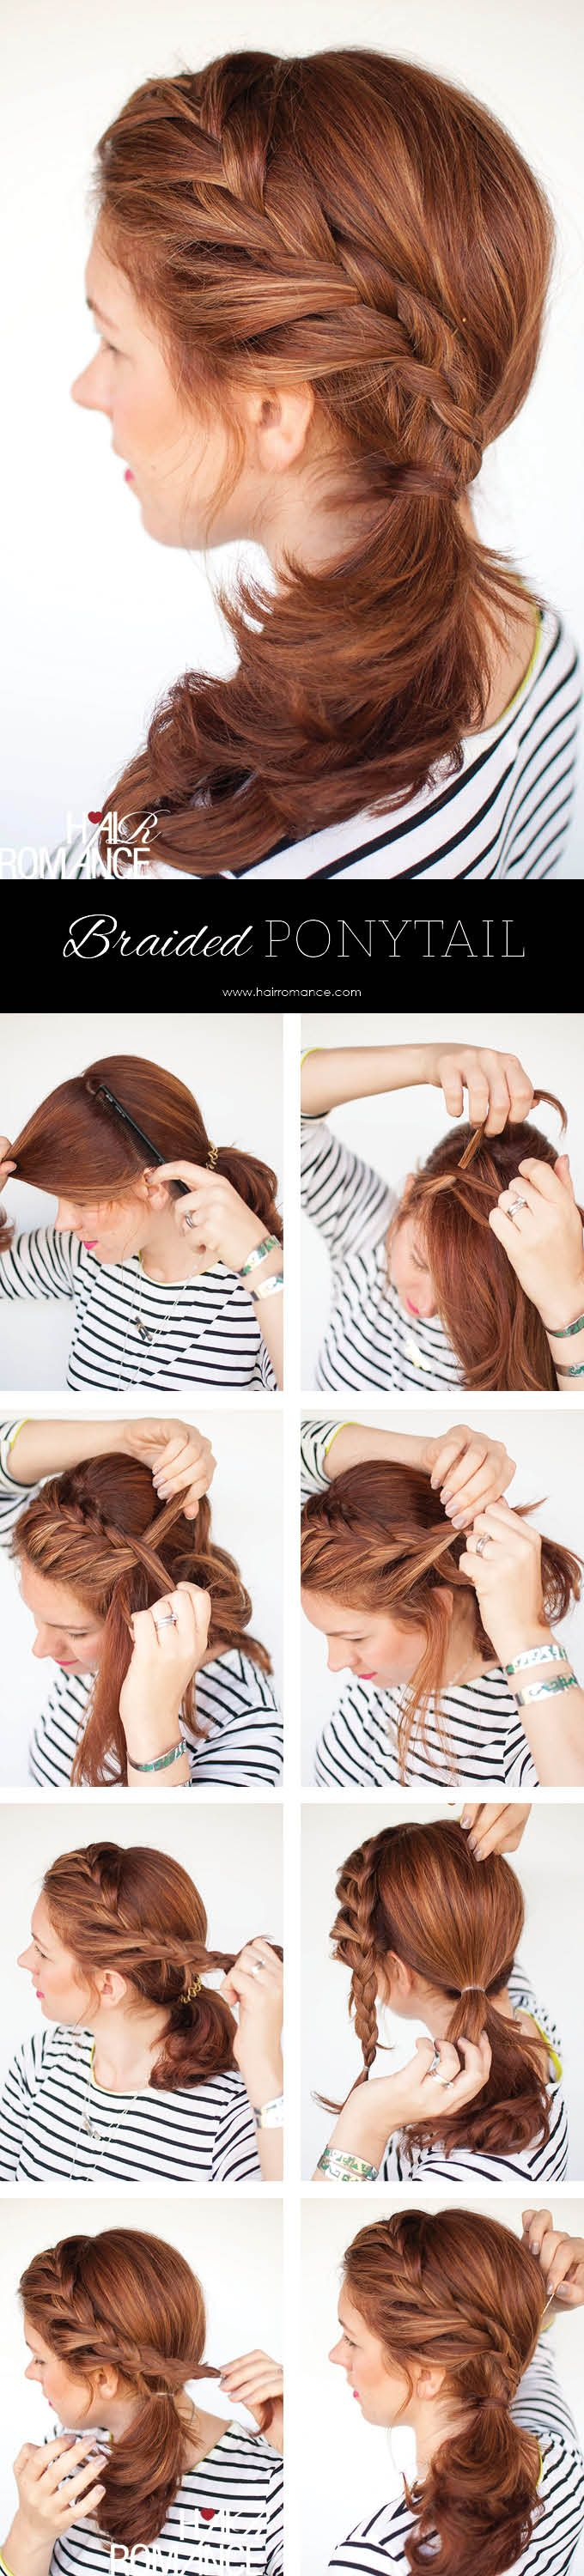 best hair images on pinterest hair ideas braids and hairstyle